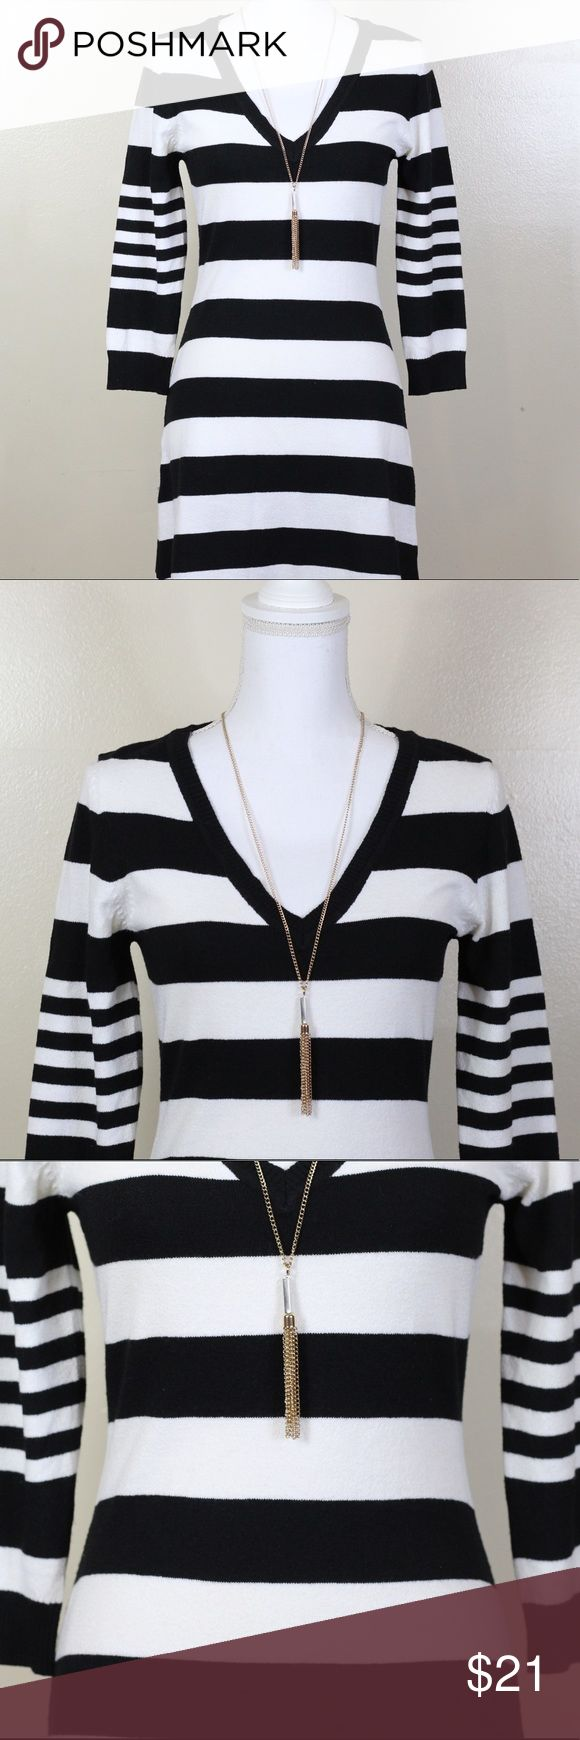 H&M Black & White Stripped Dress H&M Black & White Stripped Dress in size US S. Materials Listed in last picture. Ask me any questions you may have before buying. Offers welcome through the offer button. 💕 *pendant not included* H&M Dresses Midi